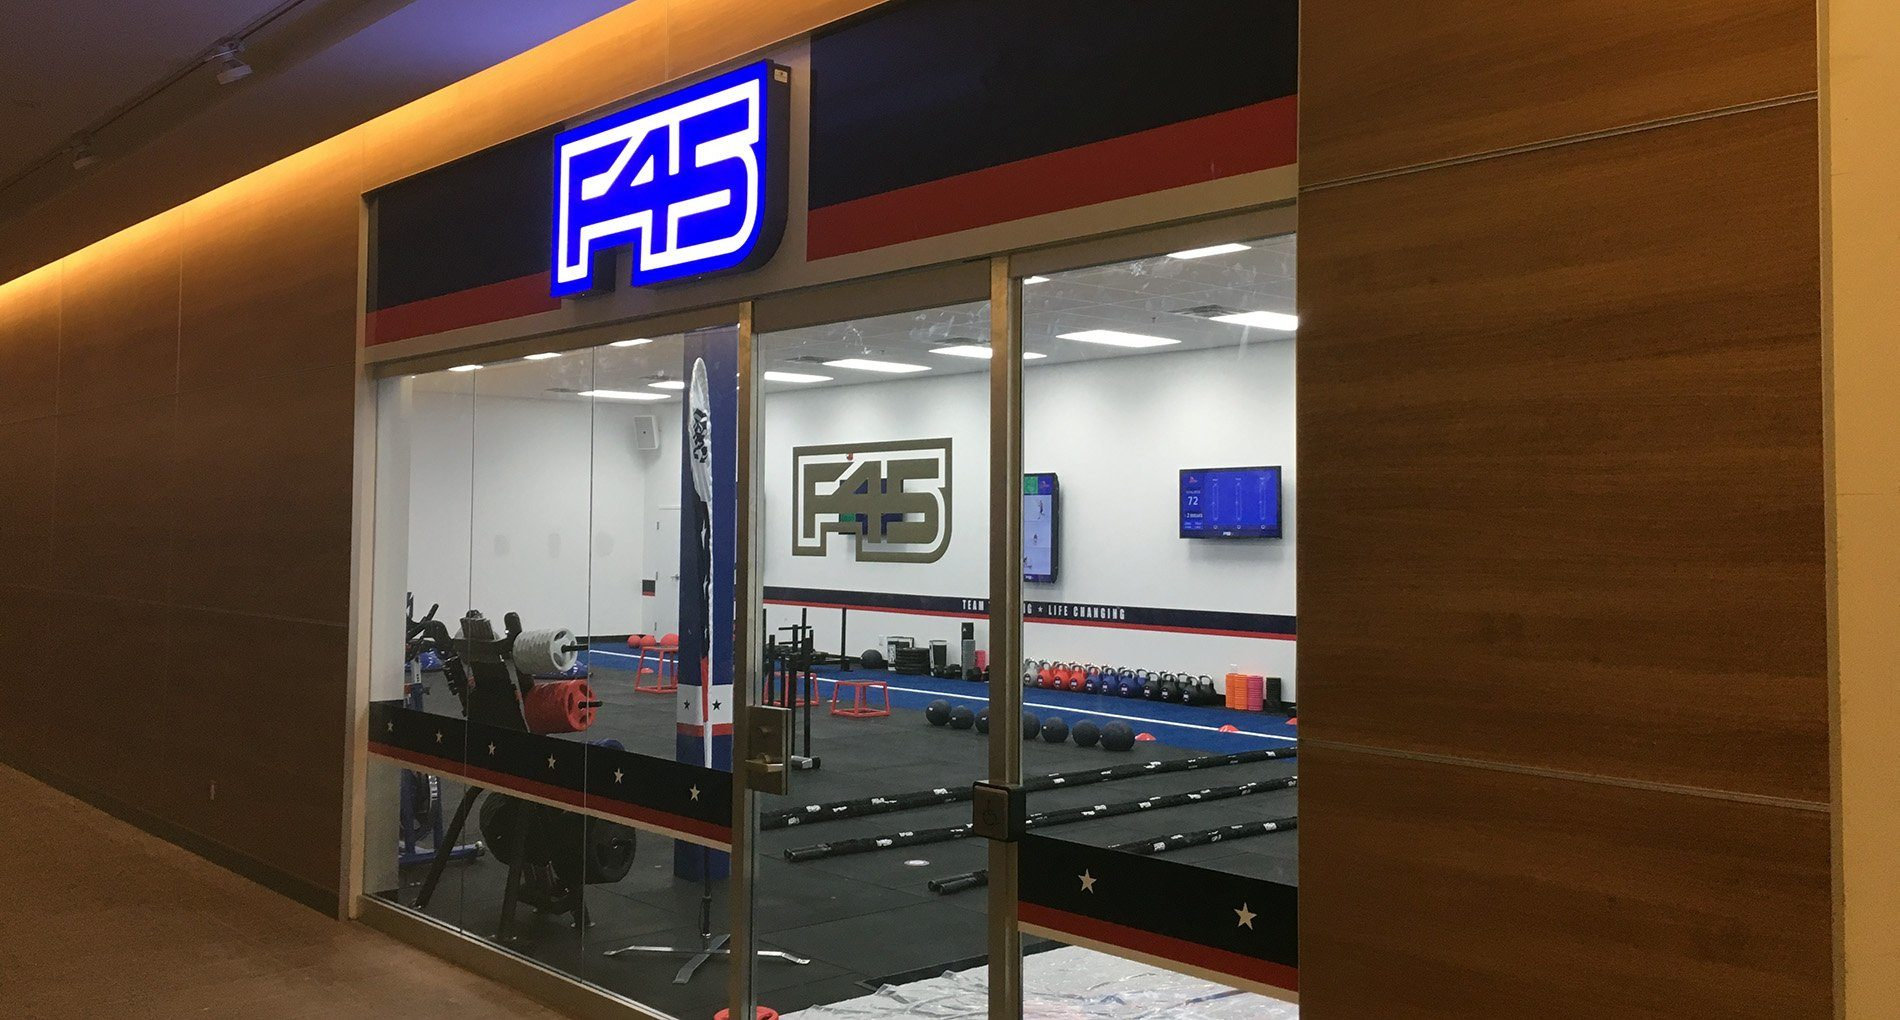 Commercial Construction Foresthill F45fitnesscentre Slider